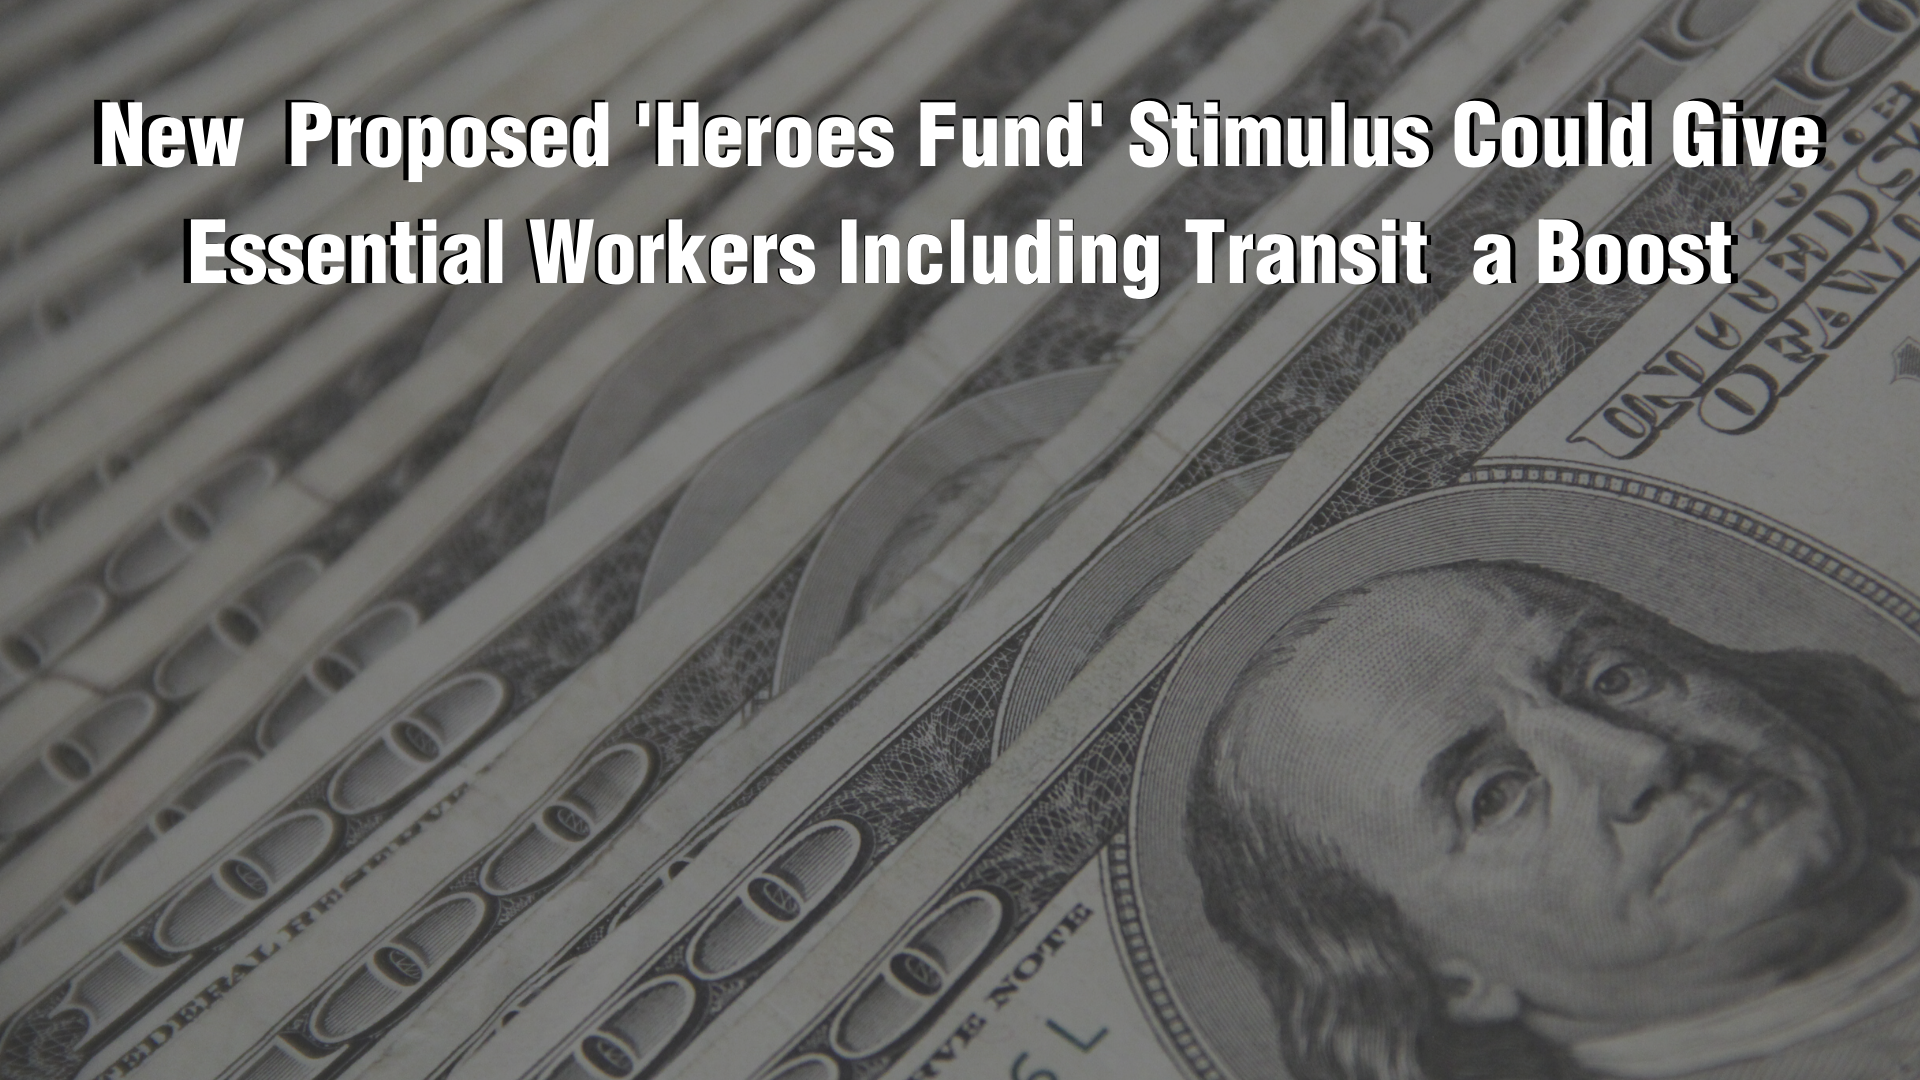 New Proposed 'Heroes Fund' Stimulus Could Give Essential Workers Including Transit a Boost